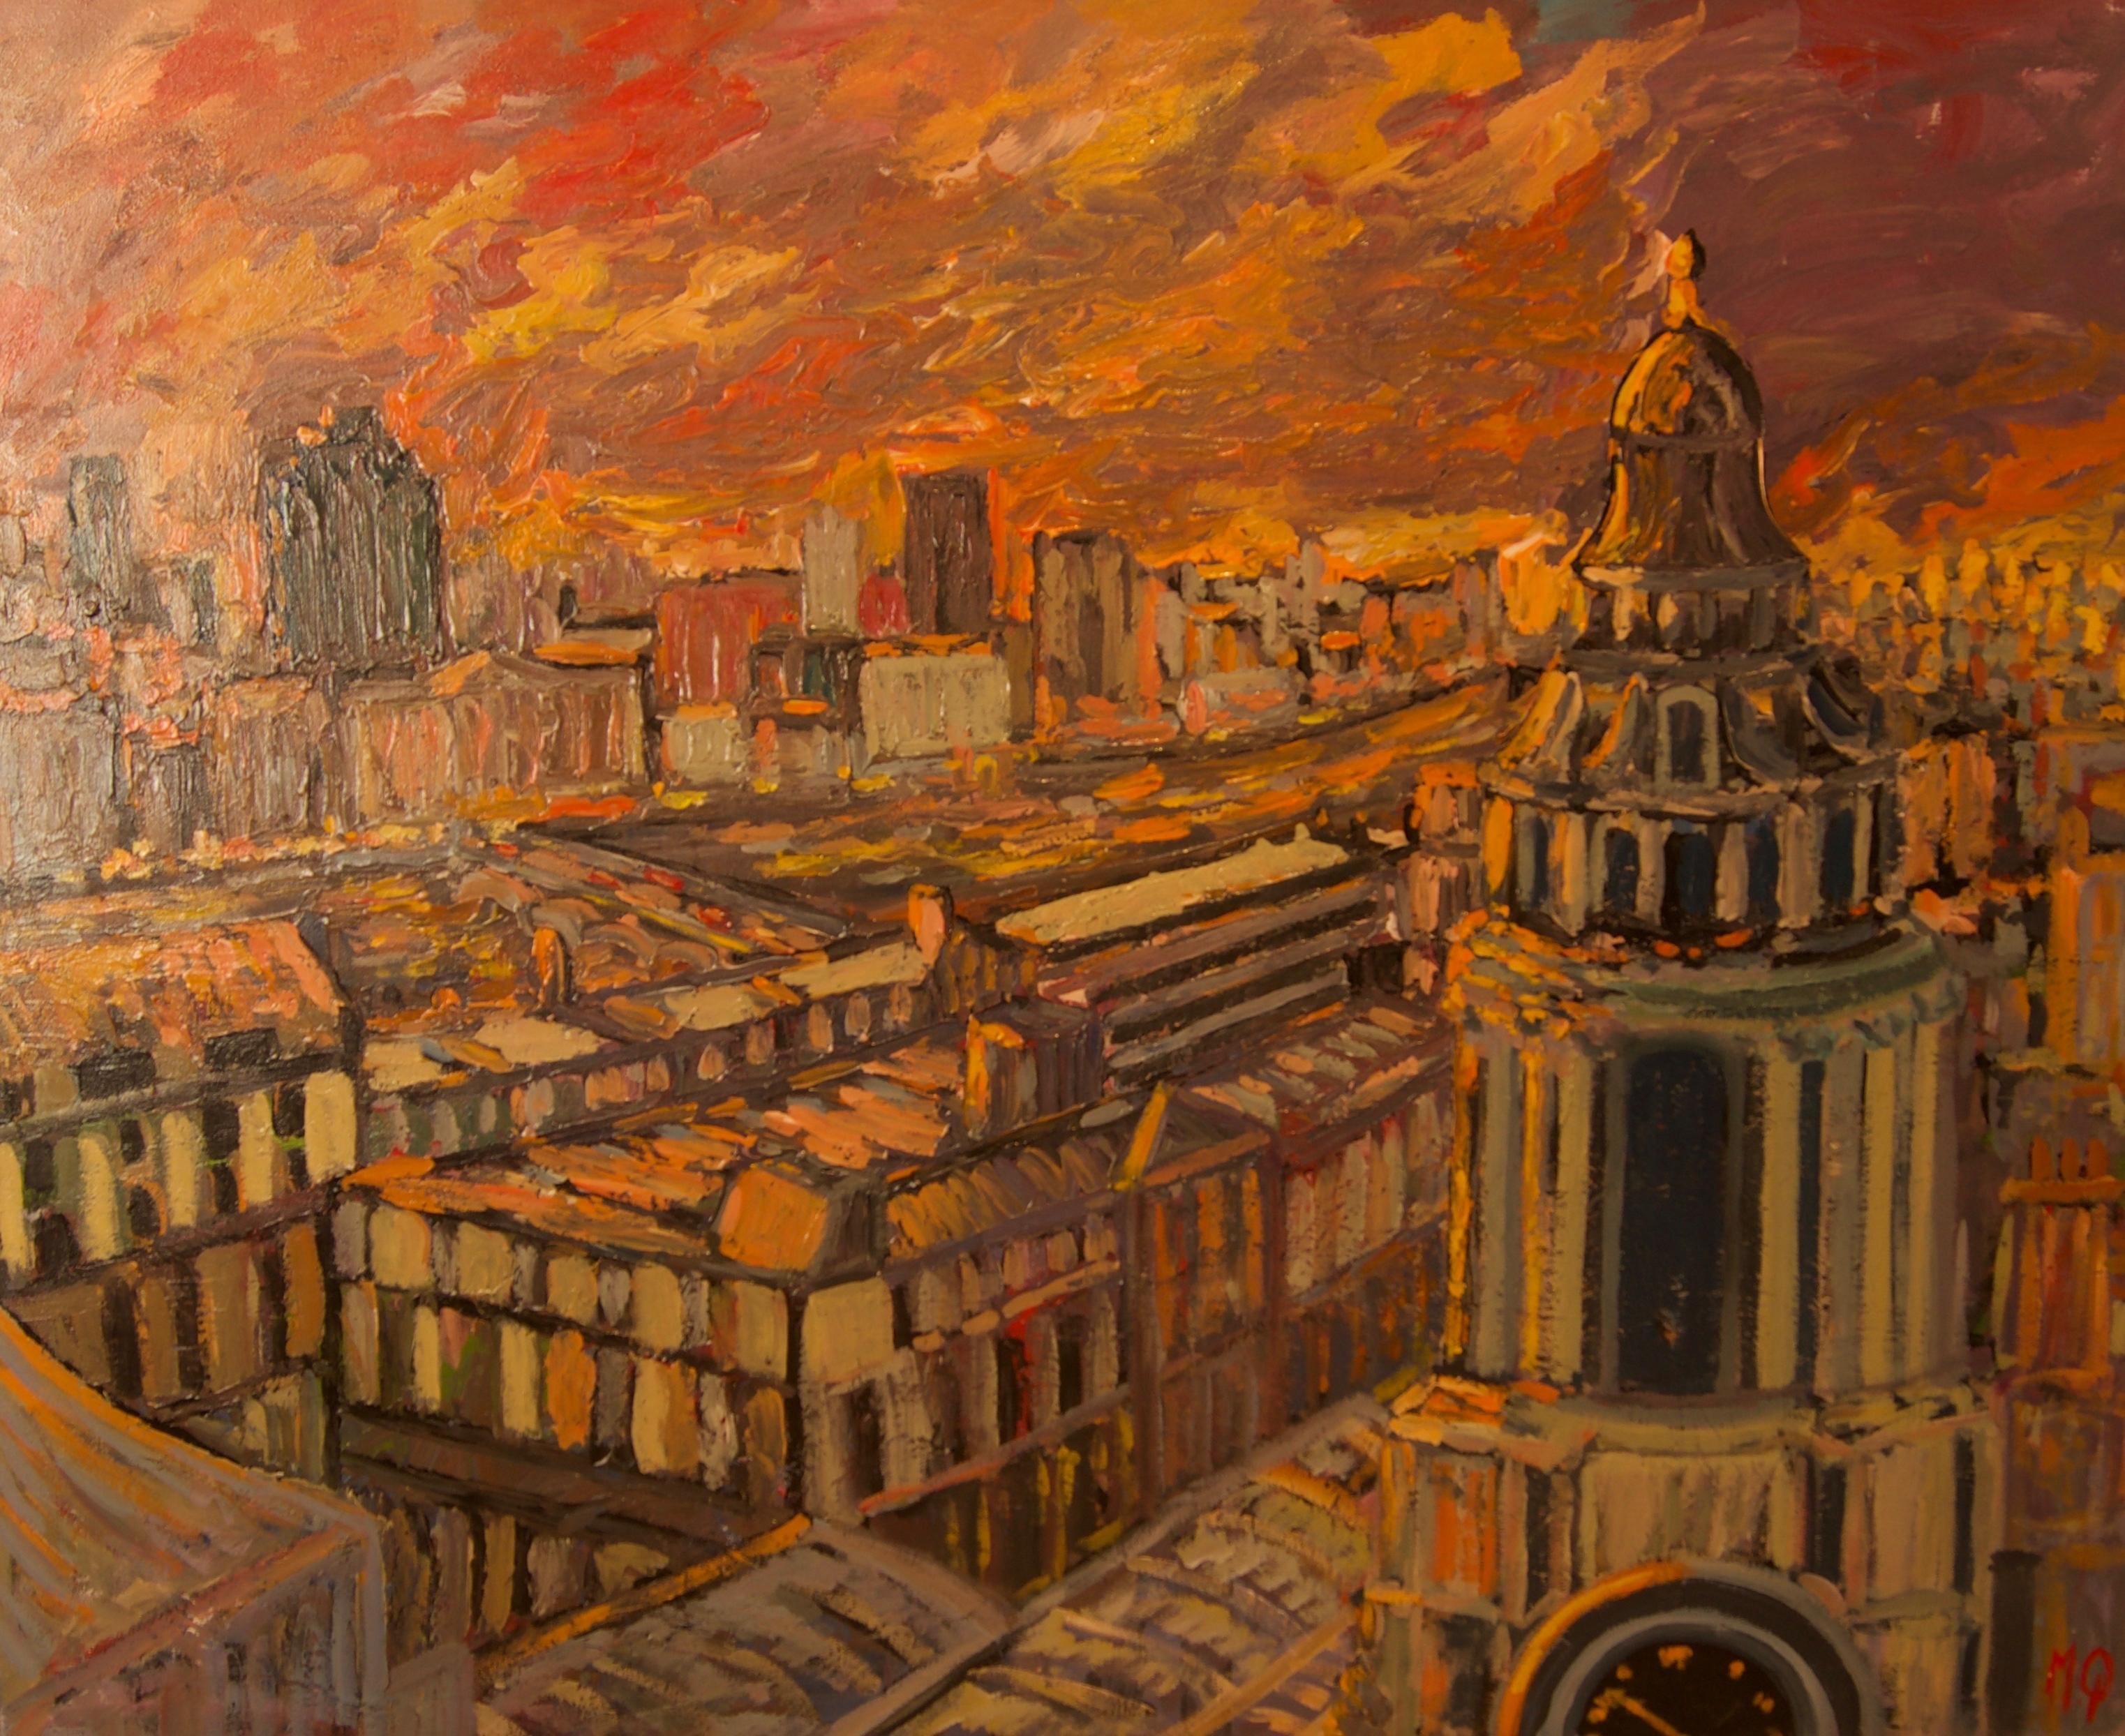 Sunset over London - Late 20th Century Impressionist Acrylic Landscape - Quirke